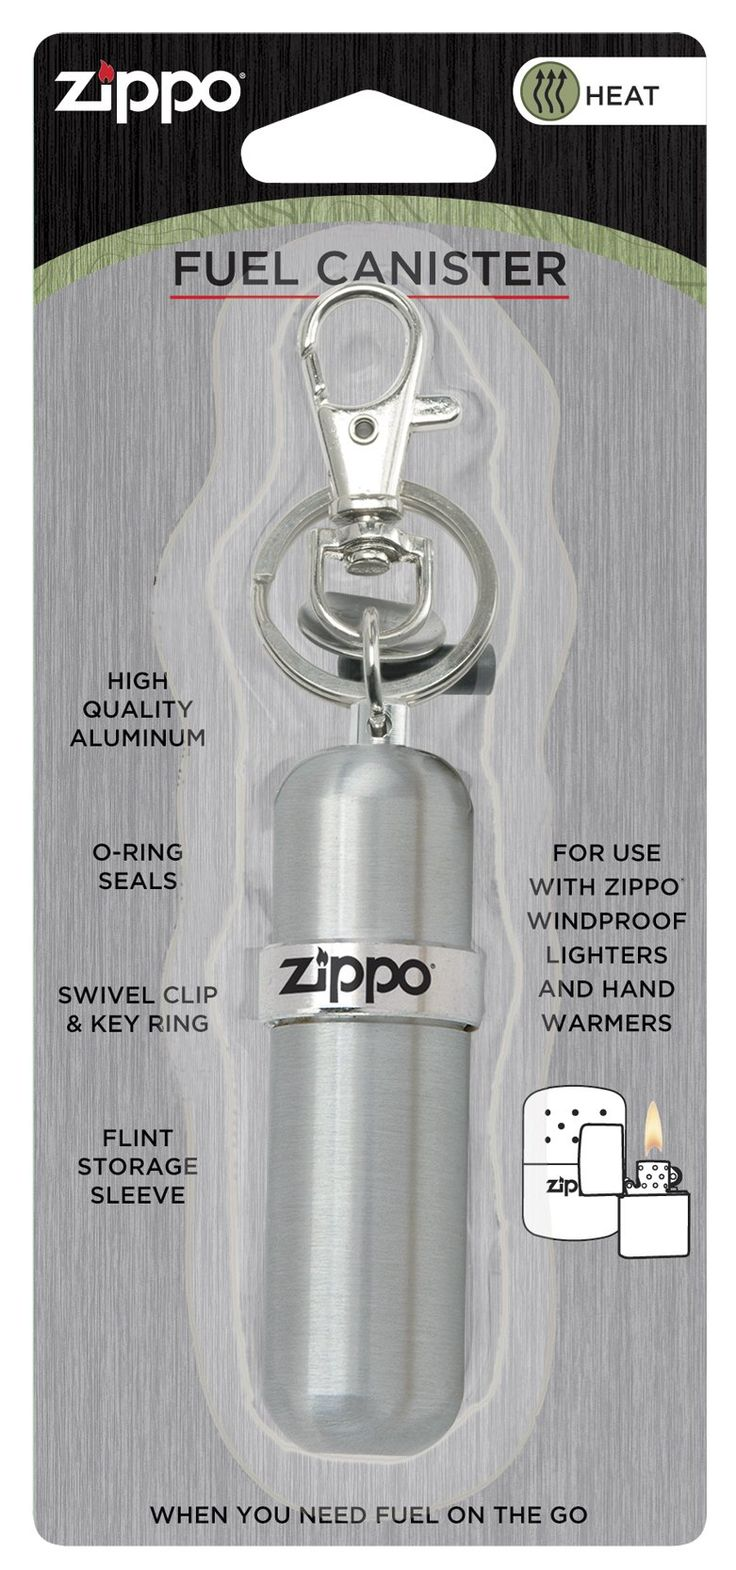 Amazon.com : Zippo Fuel Canister : Cigarette Lighters : Sports & Outdoors